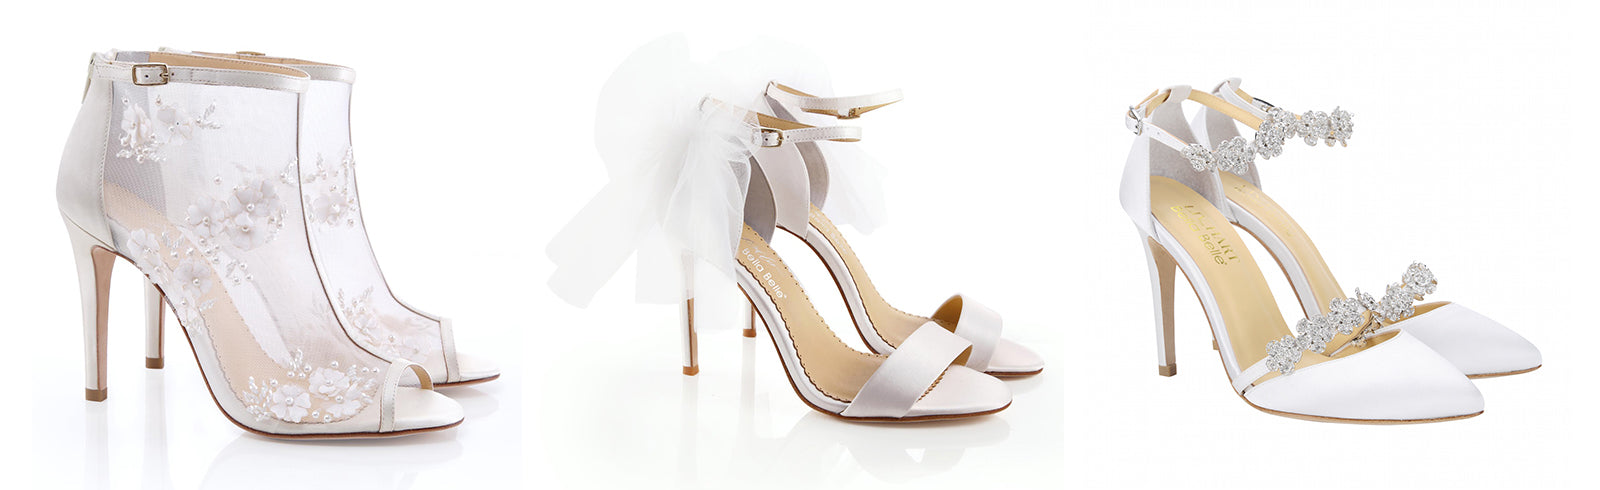 bella belle hayley paige wedding dress designer wedding shoe real brides